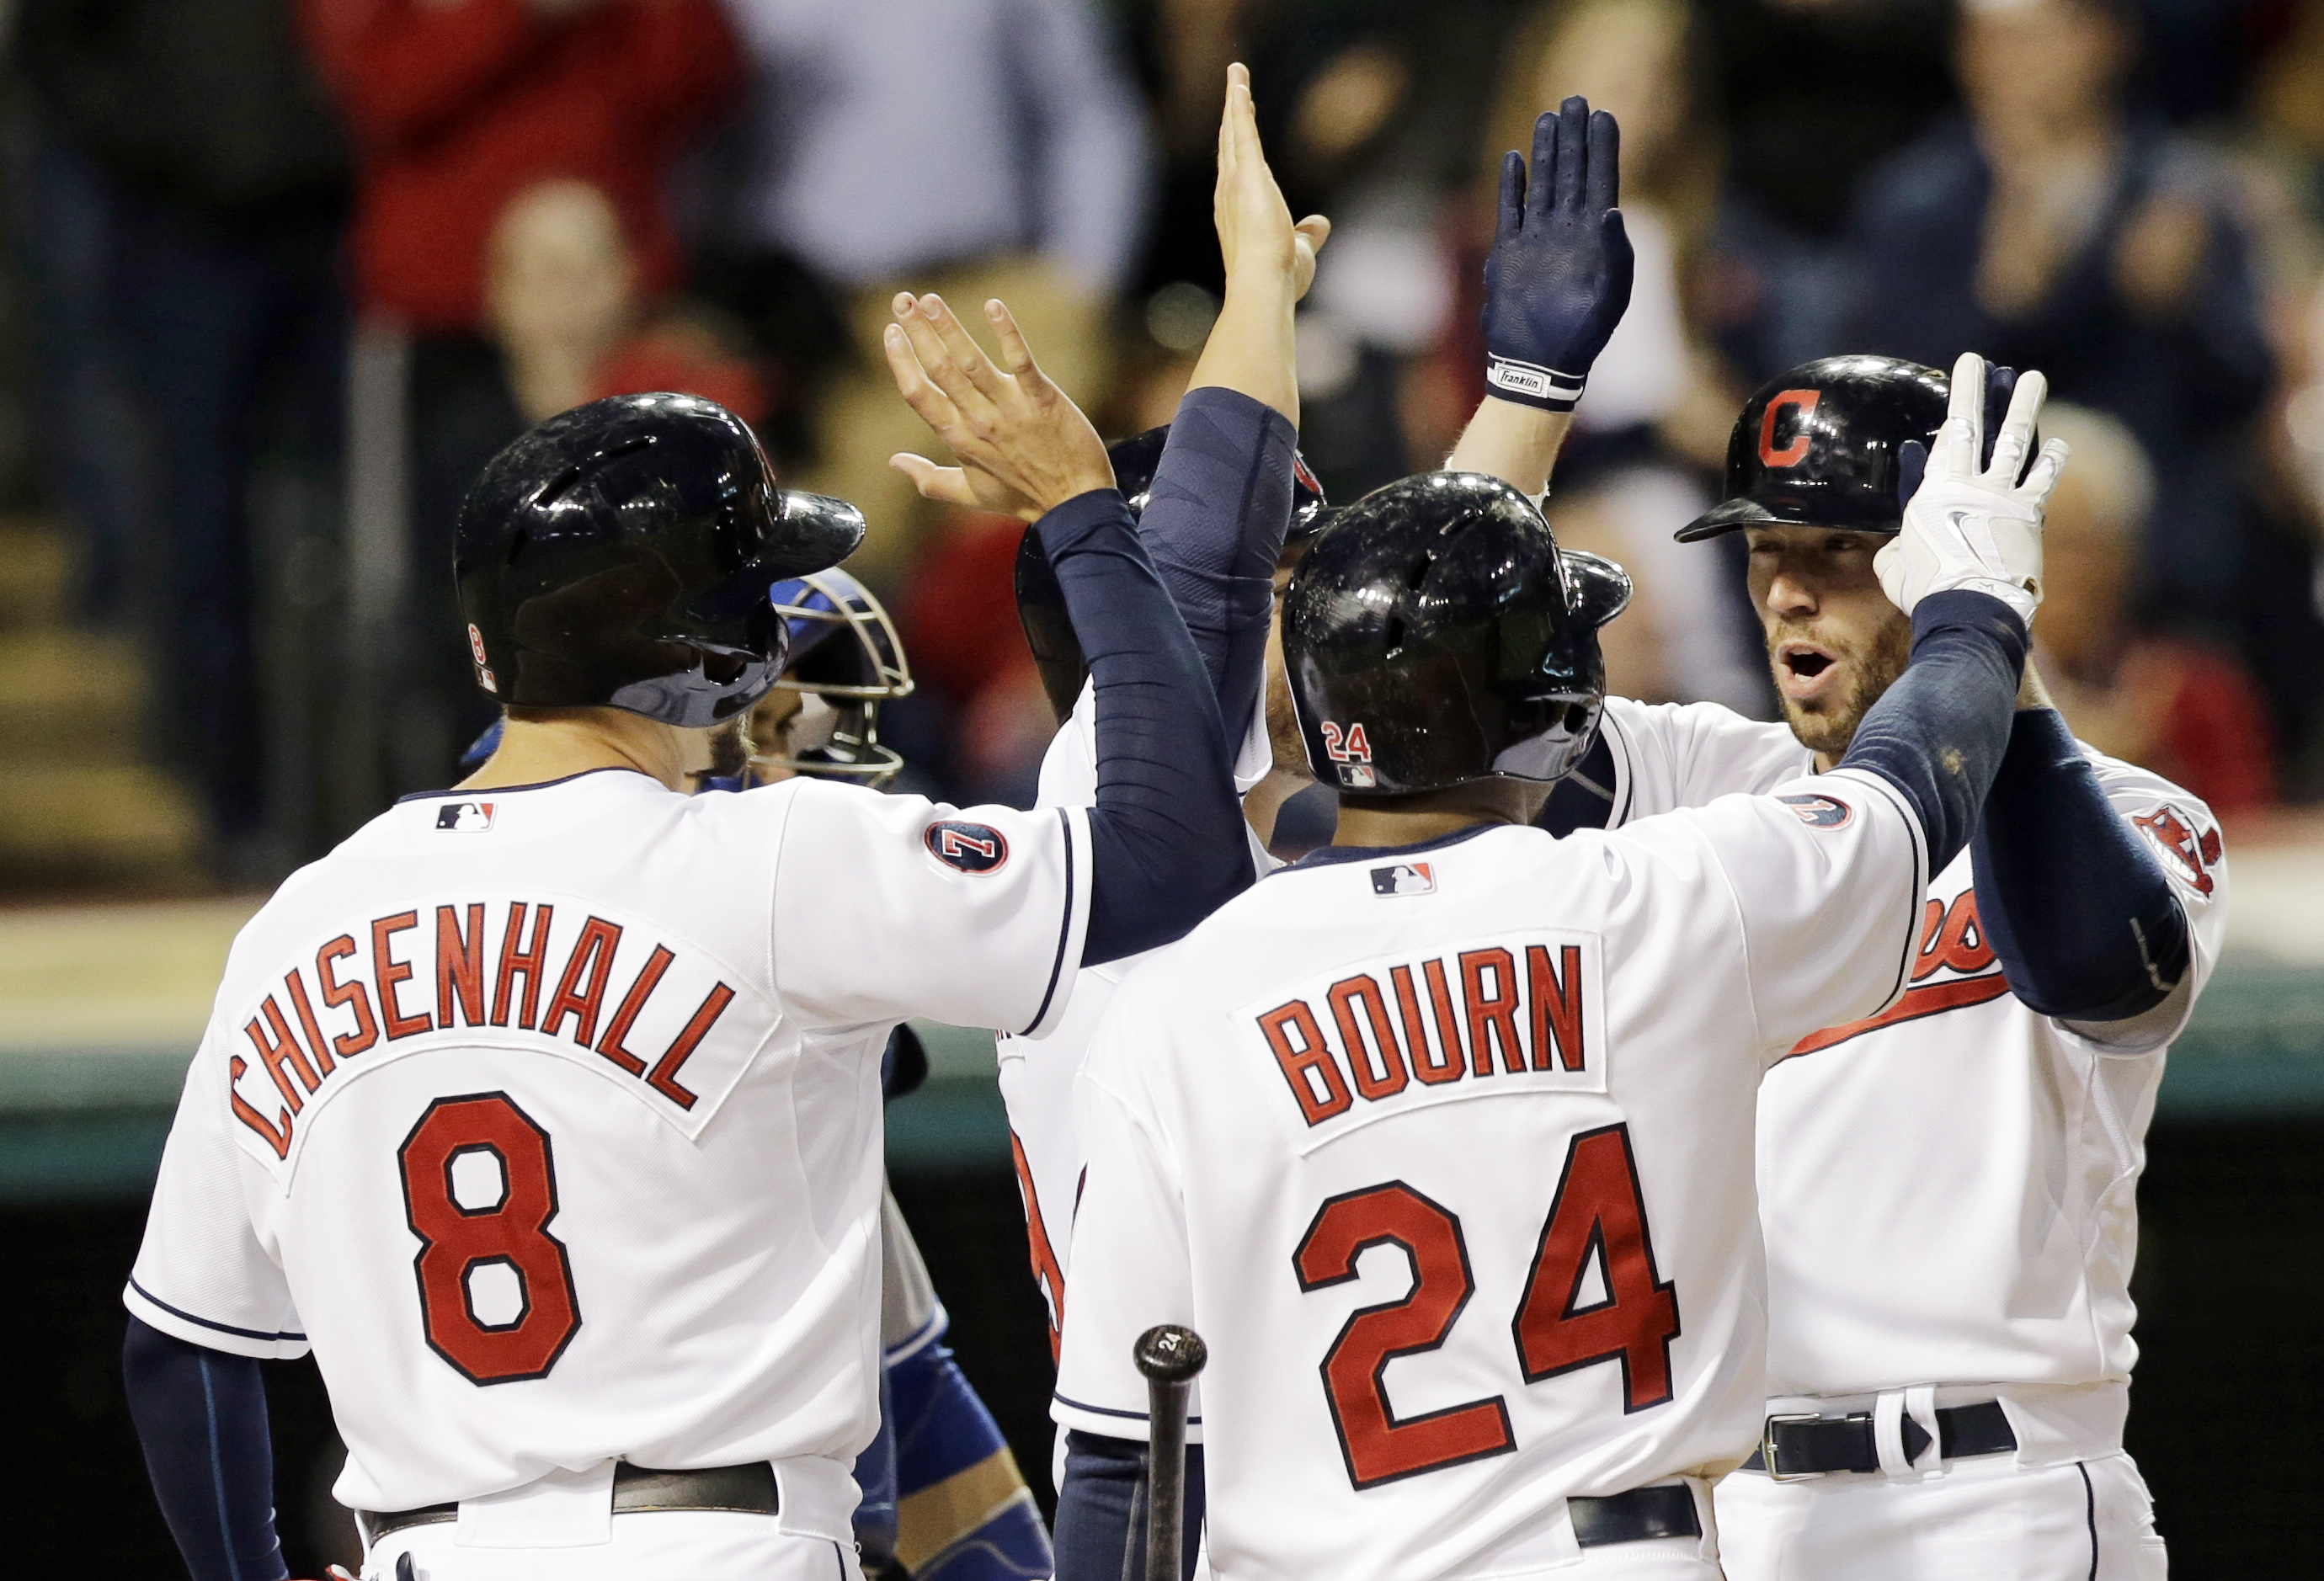 Cleveland Indians' Brett Hayes, right, is congratulated by Lonnie Chisenhall, left to right, and Michael Bourn after Hayes hit a three-run home run off Toronto Blue Jays relief pitcher Andrew Albers in the fifth inning of a baseball game, Friday, May 1, 2